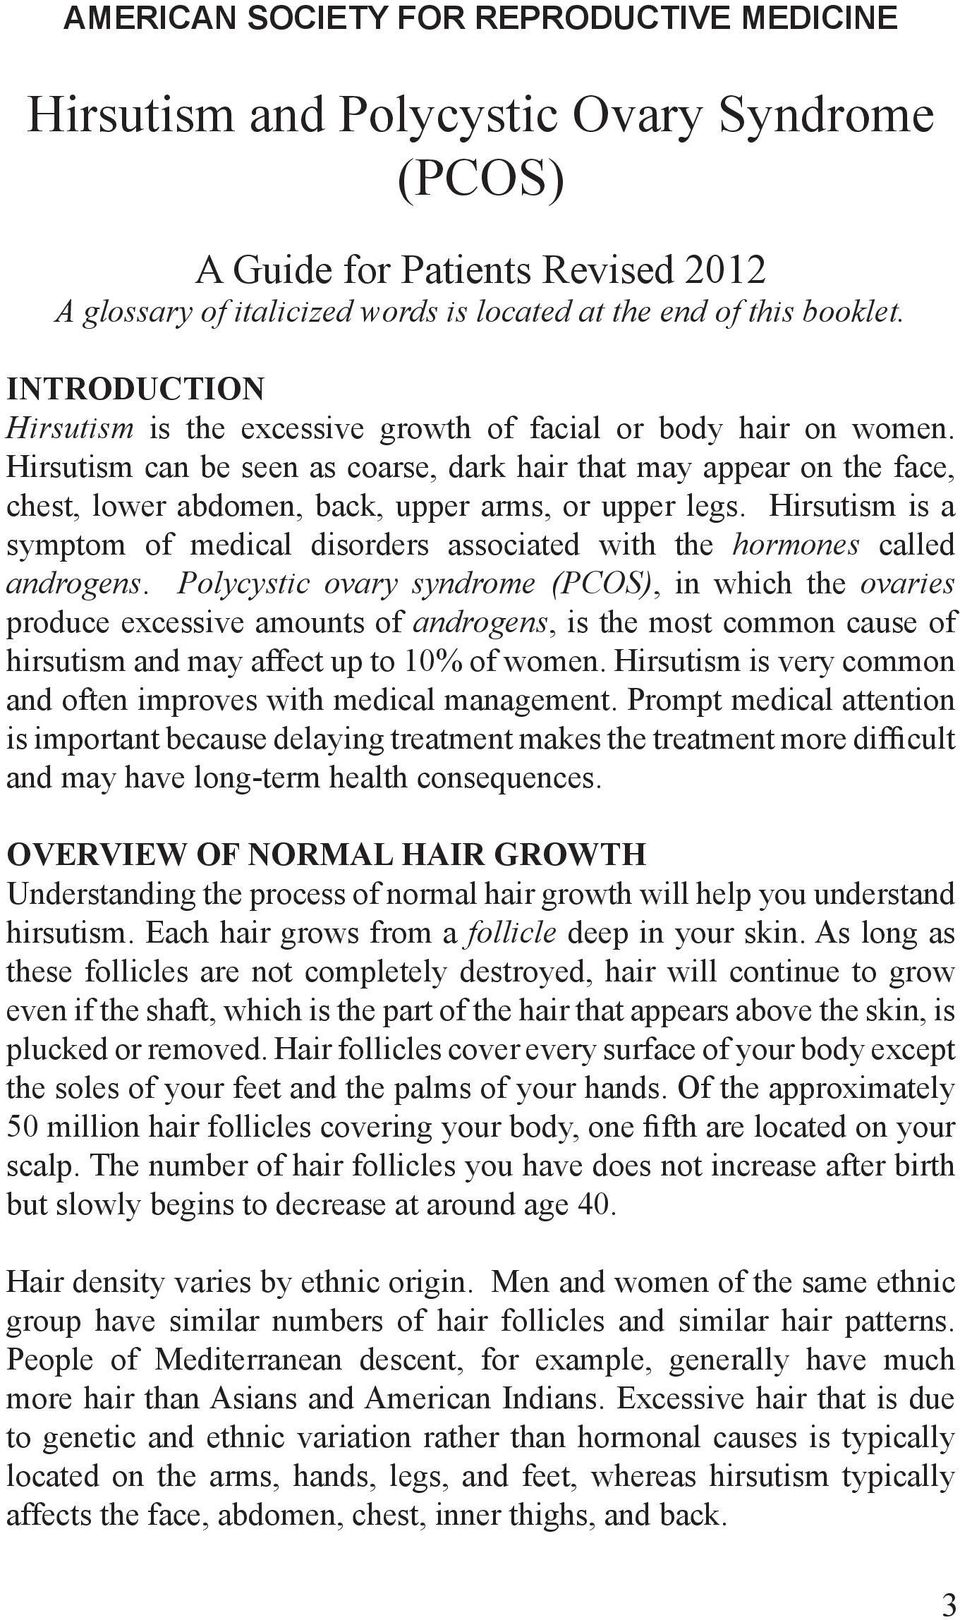 Hirsutism can be seen as coarse, dark hair that may appear on the face, chest, lower abdomen, back, upper arms, or upper legs.